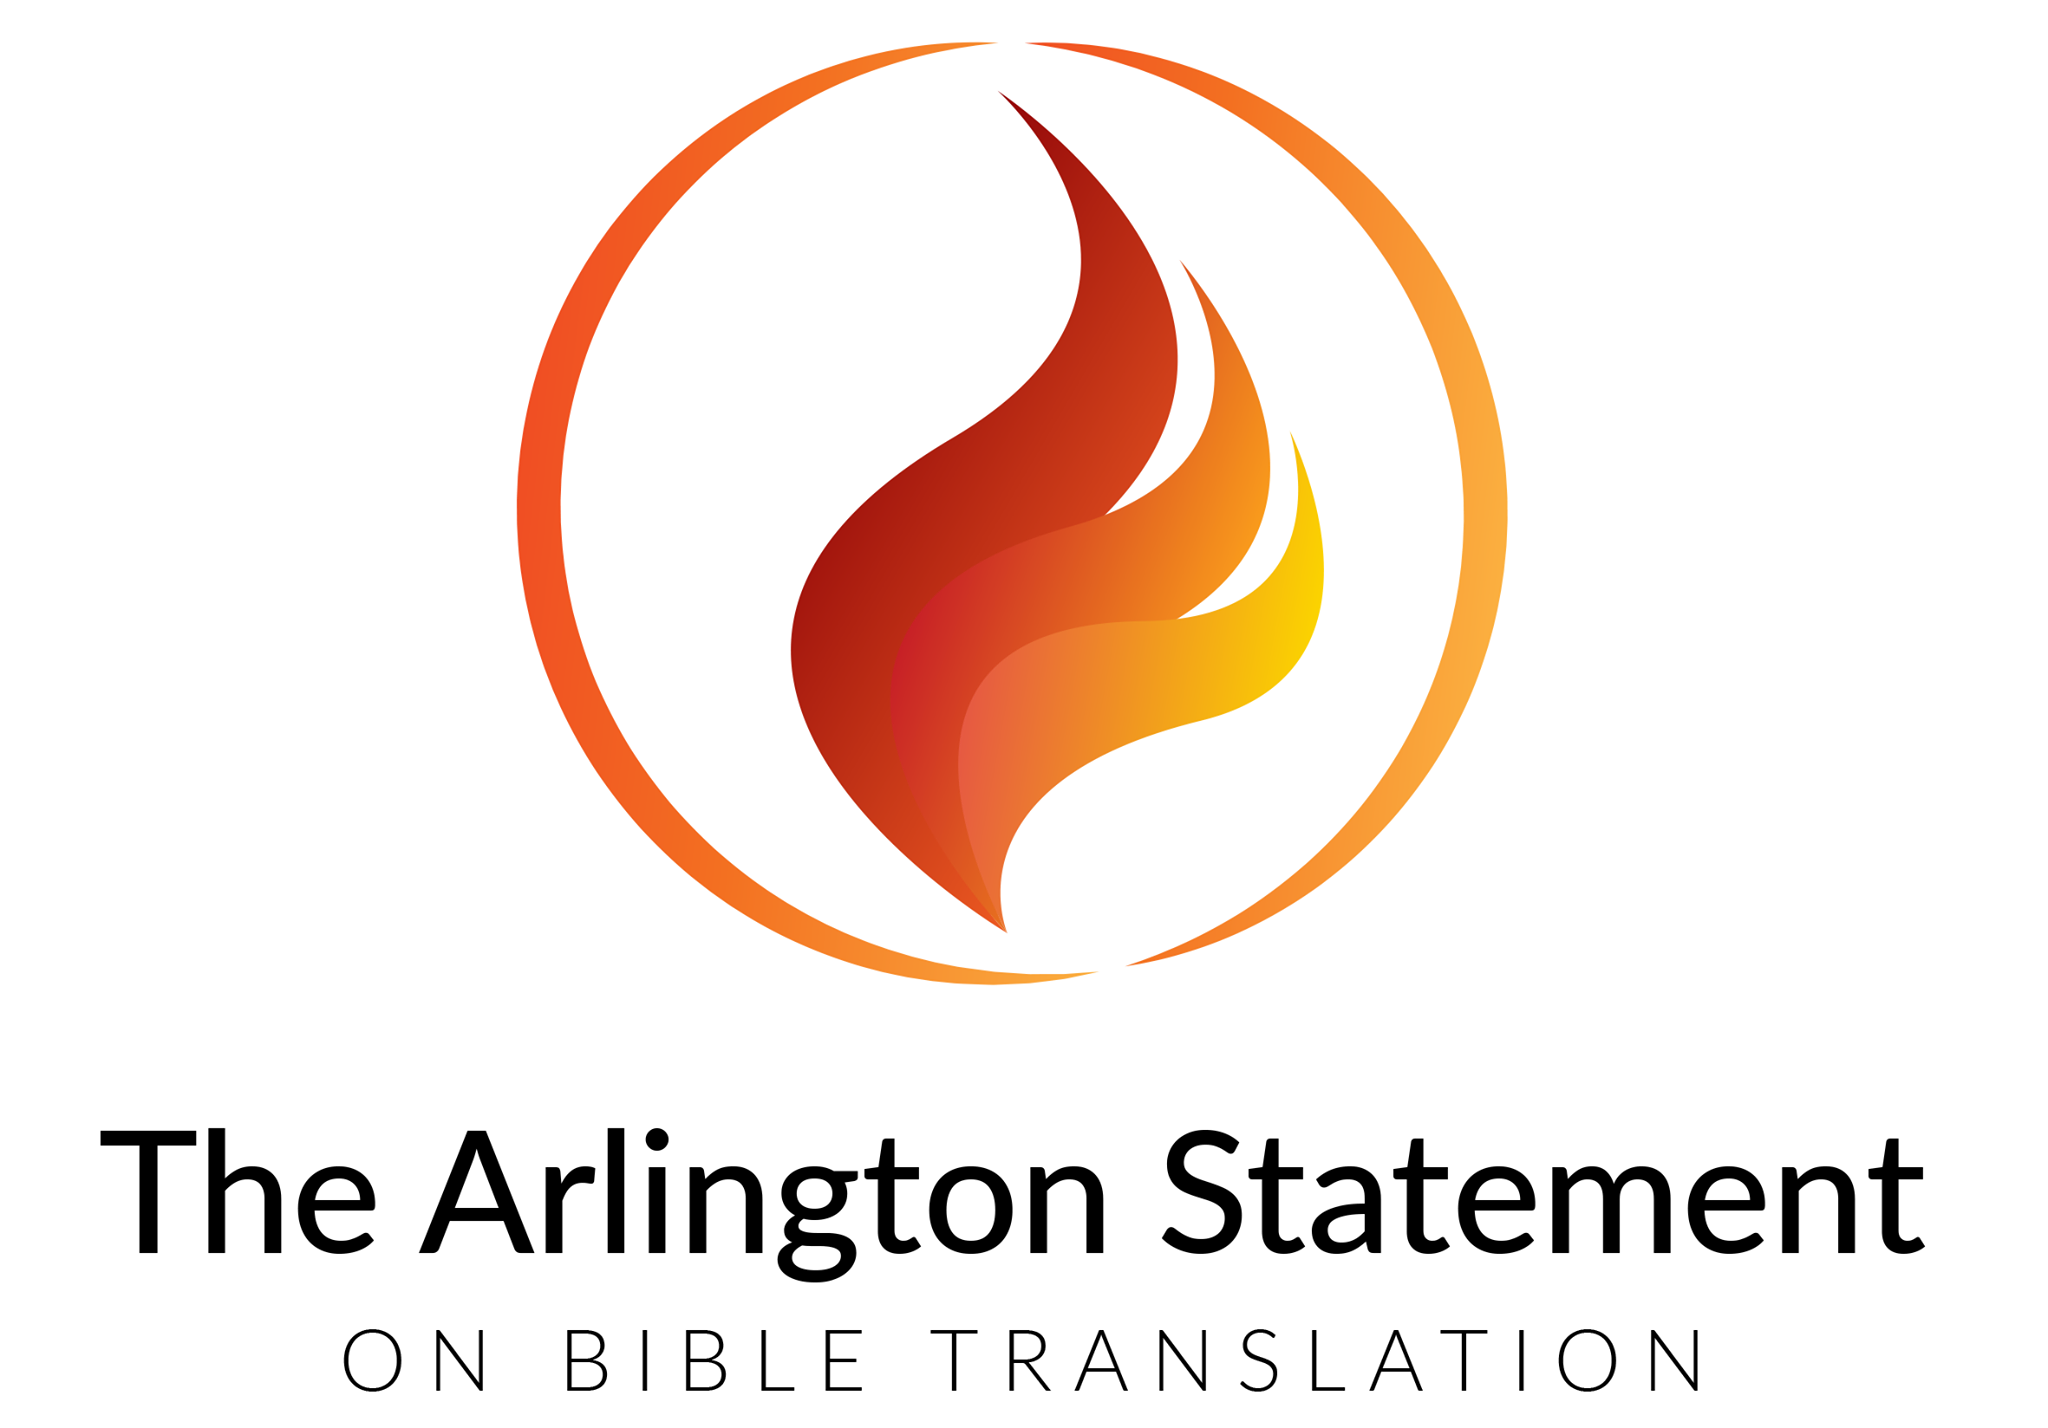 Bible Translators and  sign the Arlington Statement